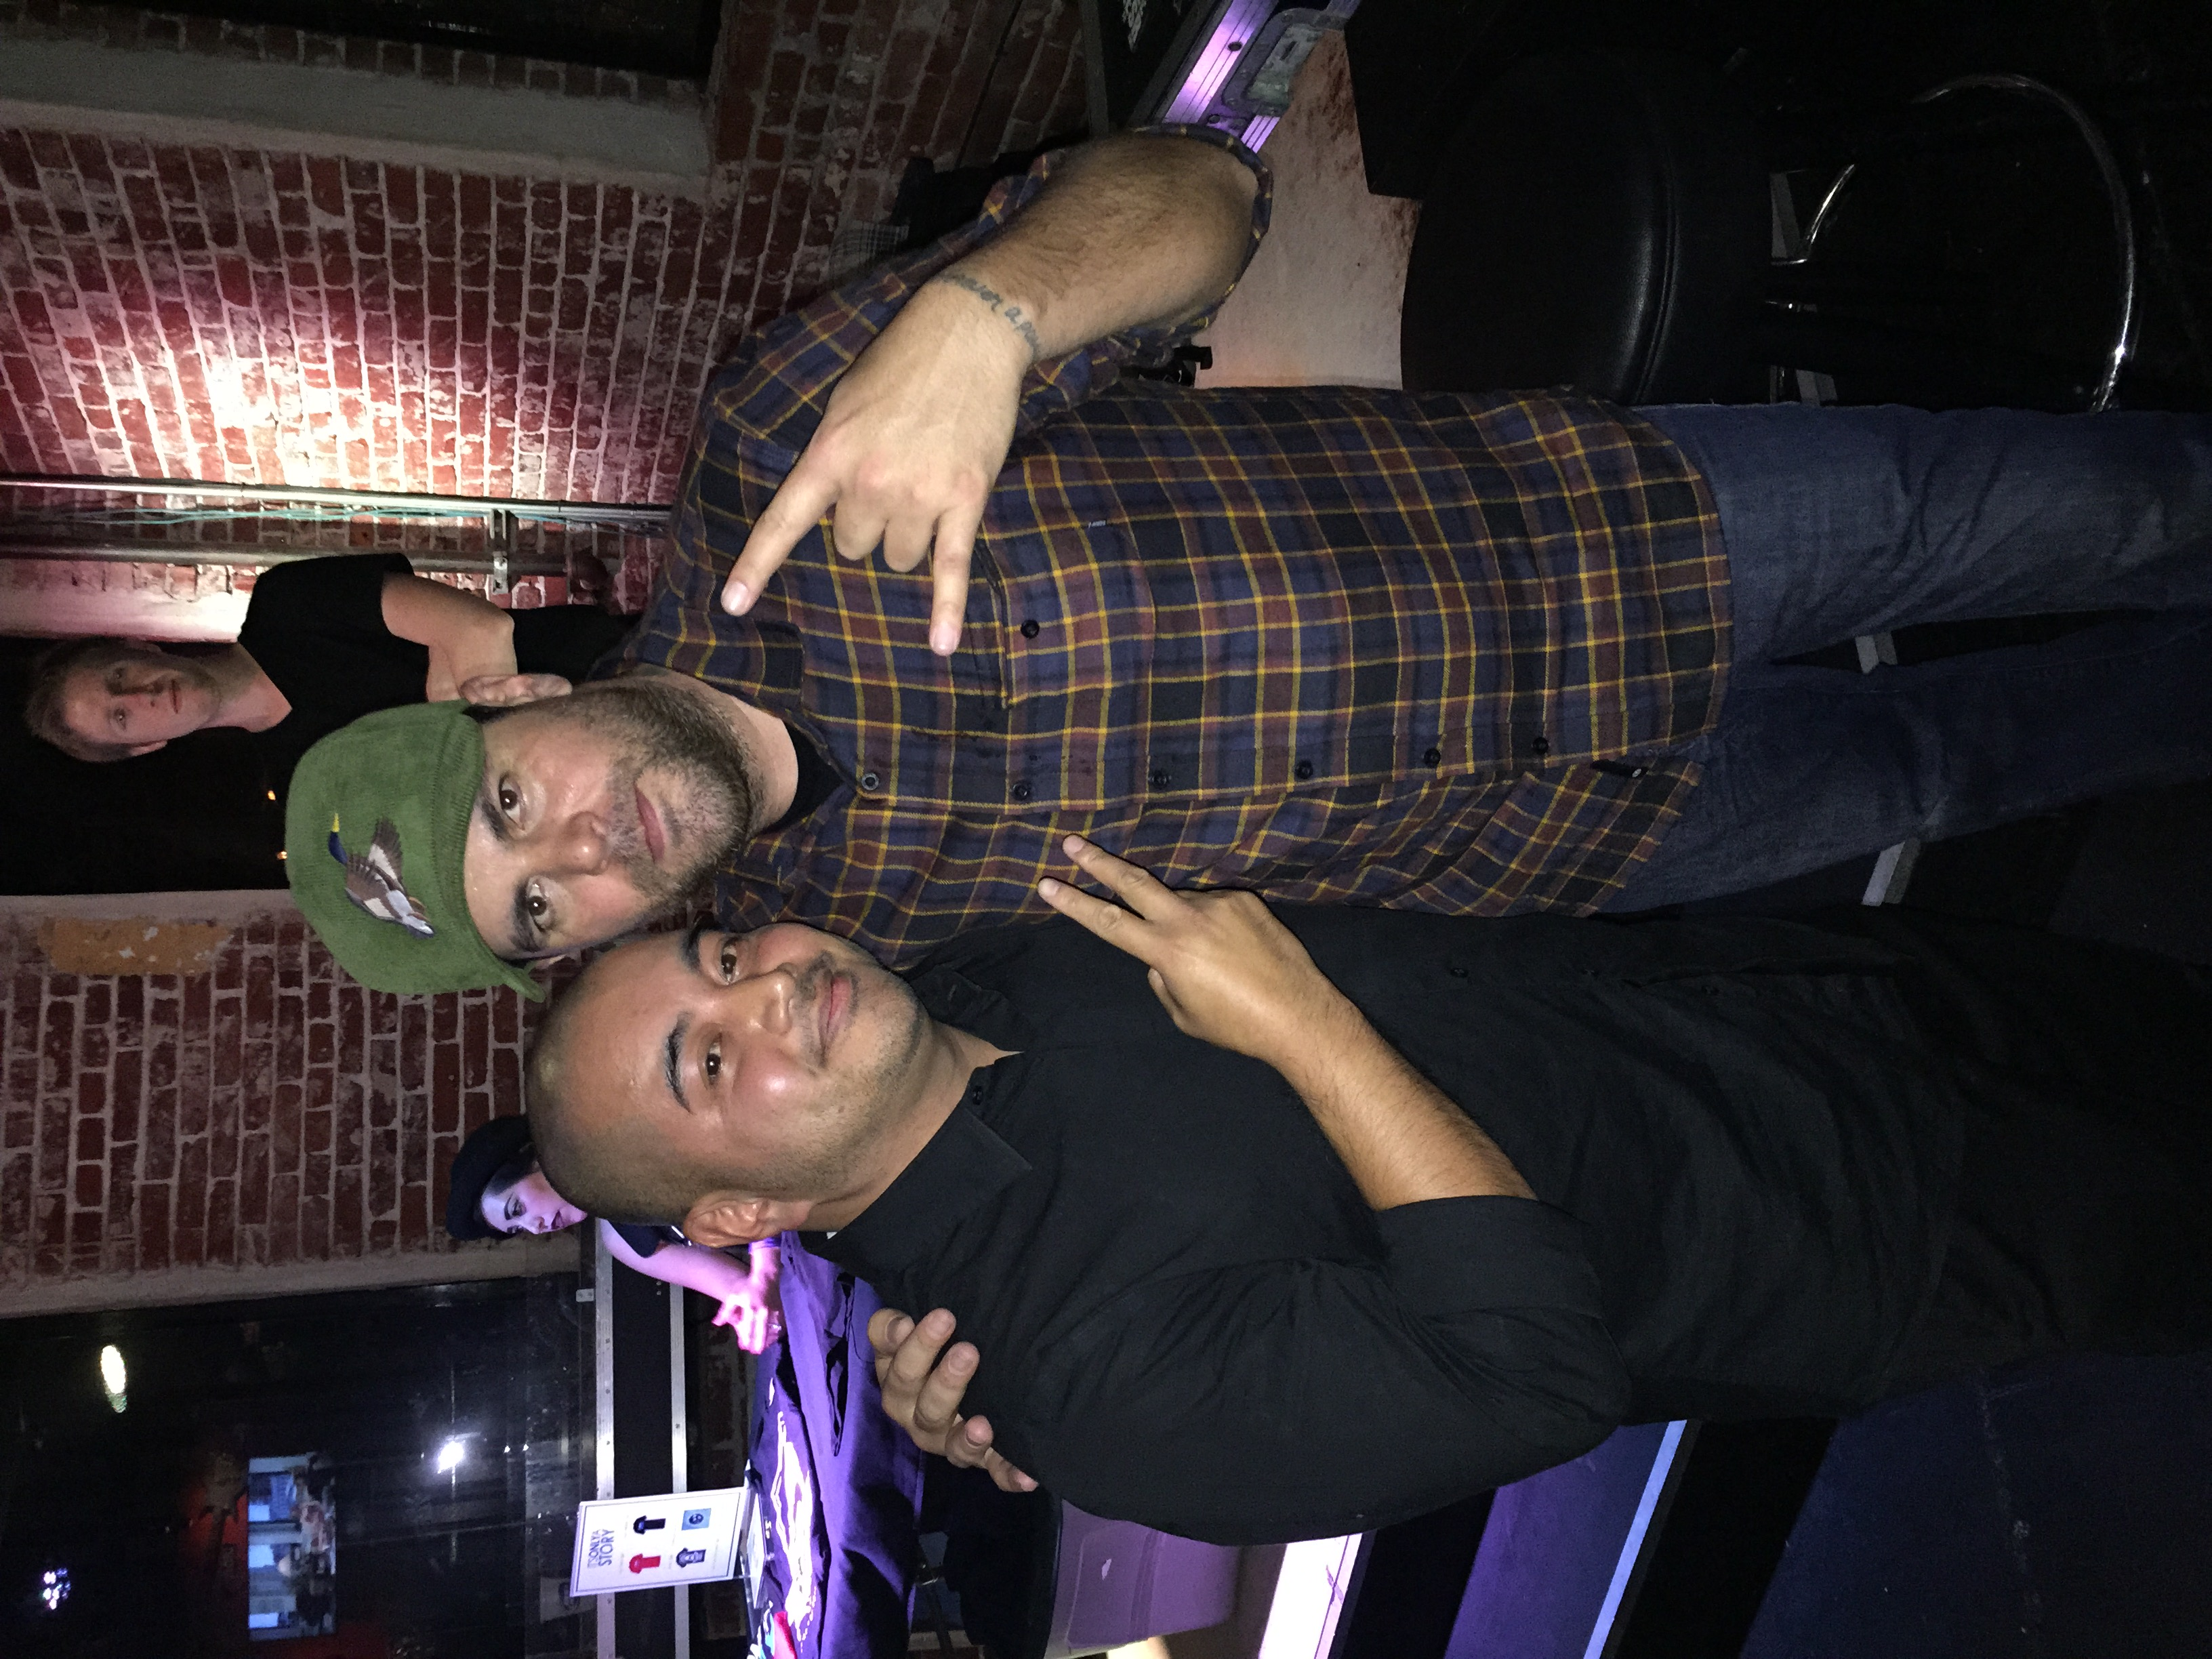 Alien Ant Farm's Dryden Mitchell and JJ after an event.